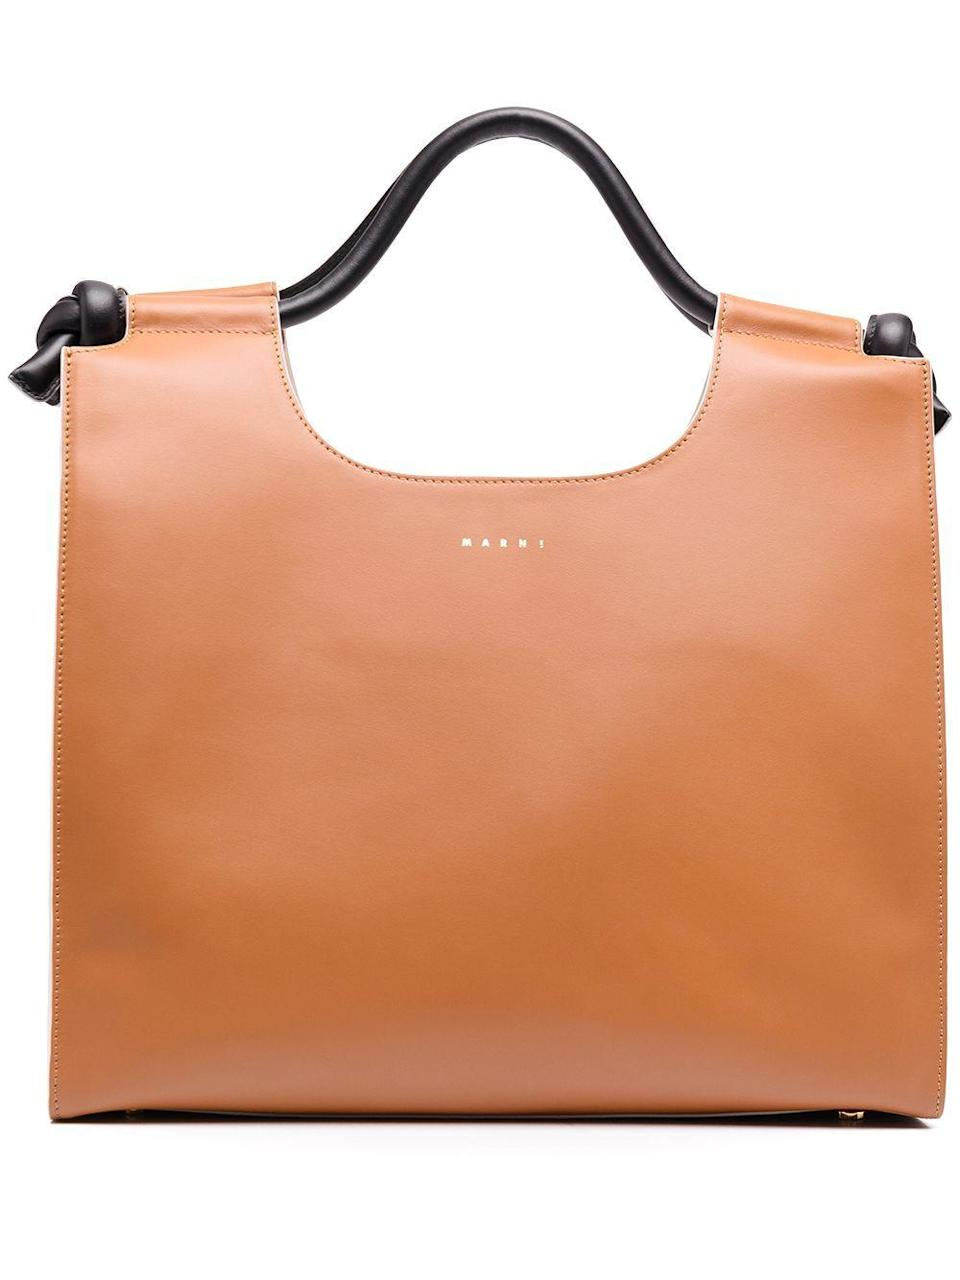 """<p><strong>Marni</strong></p><p>farfetch.com</p><p><strong>$2090.00</strong></p><p><a href=""""https://go.redirectingat.com?id=74968X1596630&url=https%3A%2F%2Fwww.farfetch.com%2Fshopping%2Fwomen%2Fmarni-logo-print-leather-tote-bag-item-16085335.aspx&sref=https%3A%2F%2Fwww.harpersbazaar.com%2Ffashion%2Ftrends%2Fg22591832%2Fbest-laptop-bags-for-women%2F"""" rel=""""nofollow noopener"""" target=""""_blank"""" data-ylk=""""slk:Shop Now"""" class=""""link rapid-noclick-resp"""">Shop Now</a></p><p>A sleek bag that will fit anything and everything, whether you are going to the office or hitting the road. </p>"""